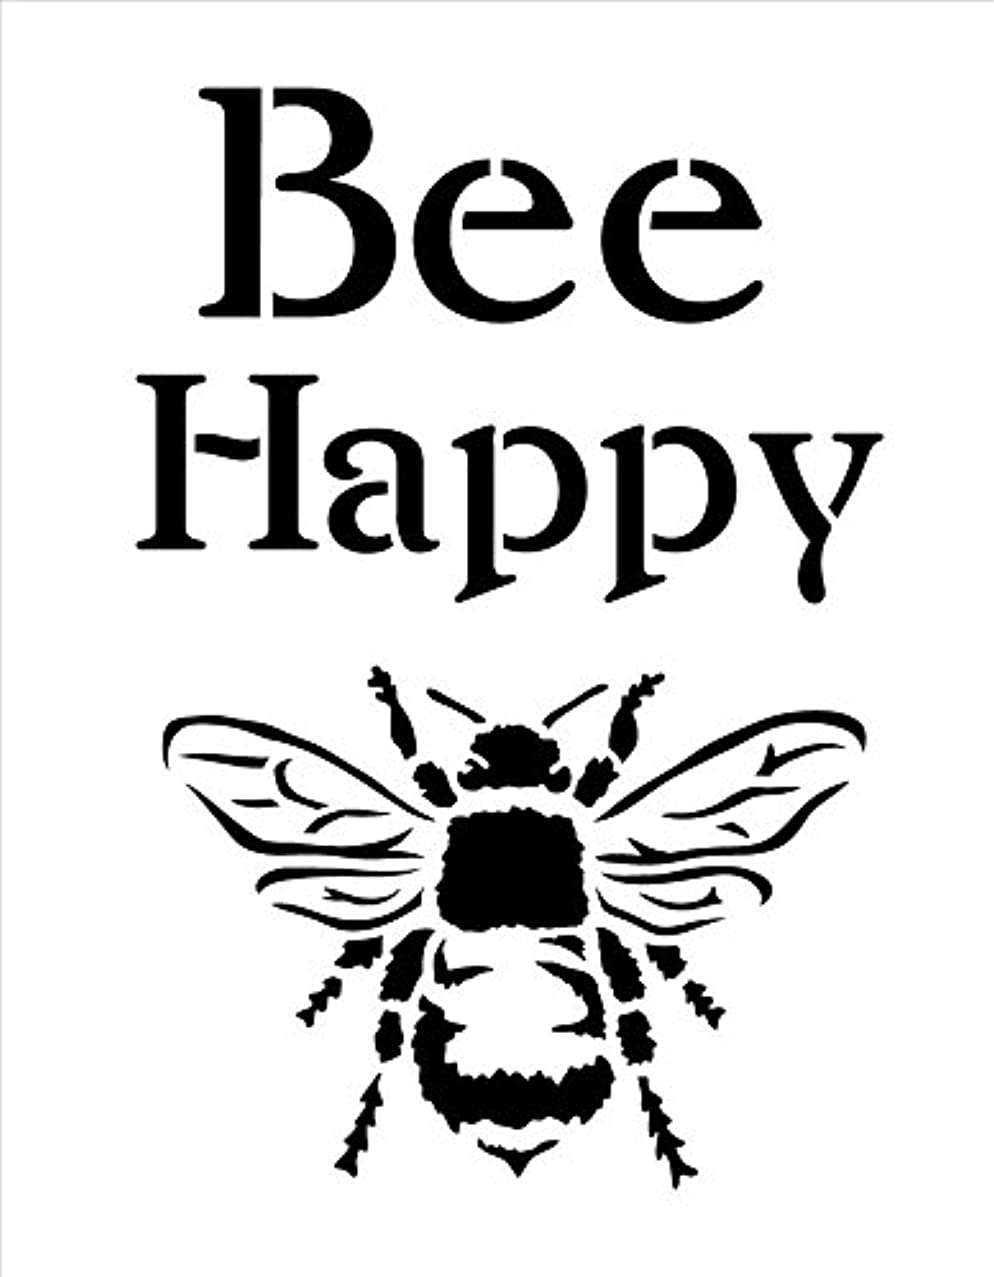 Bee Happy Stencil by StudioR12 | Fun Spring Garden Word Art - Reusable Mylar Template | Painting, Chalk, Mixed Media | Use for Crafting, DIY Home Decor - STCL1171_1 …SELECT SIZE (9